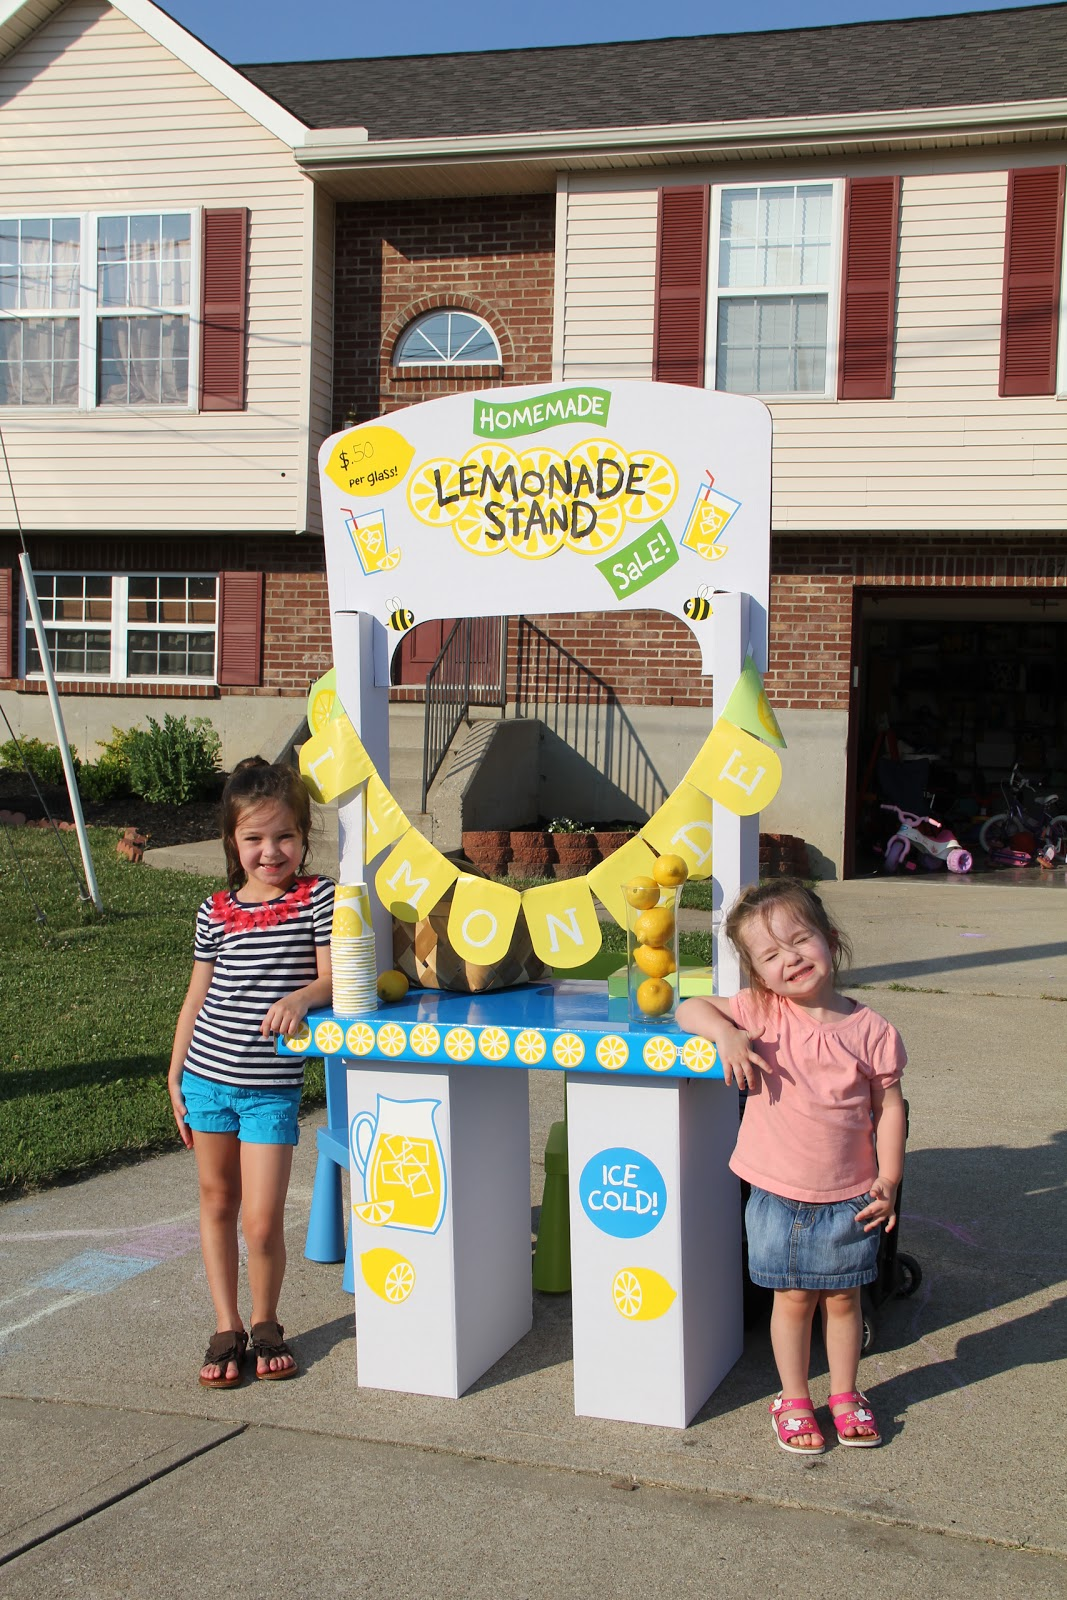 Apr 30,  · Need some slogans for lemonade business T-shirts Archived Muscling in on the neighborhood lemonade stand since Share this post. Link to post Share on other sites. except replace